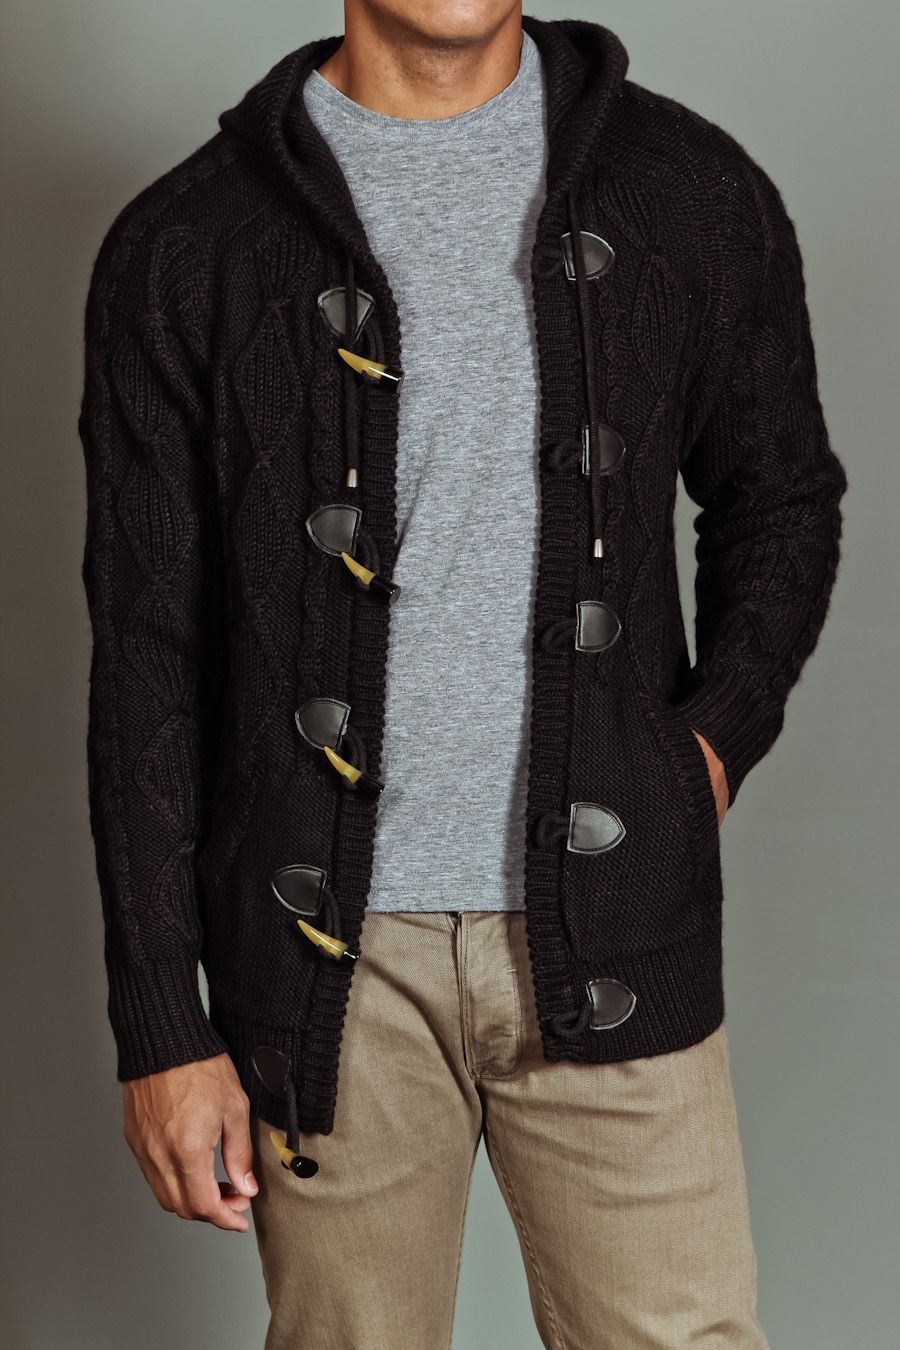 White Picket Fence Hooded Pouch Pocket Toggle Cardigan Sweater | $65.99 |  #JackThreads